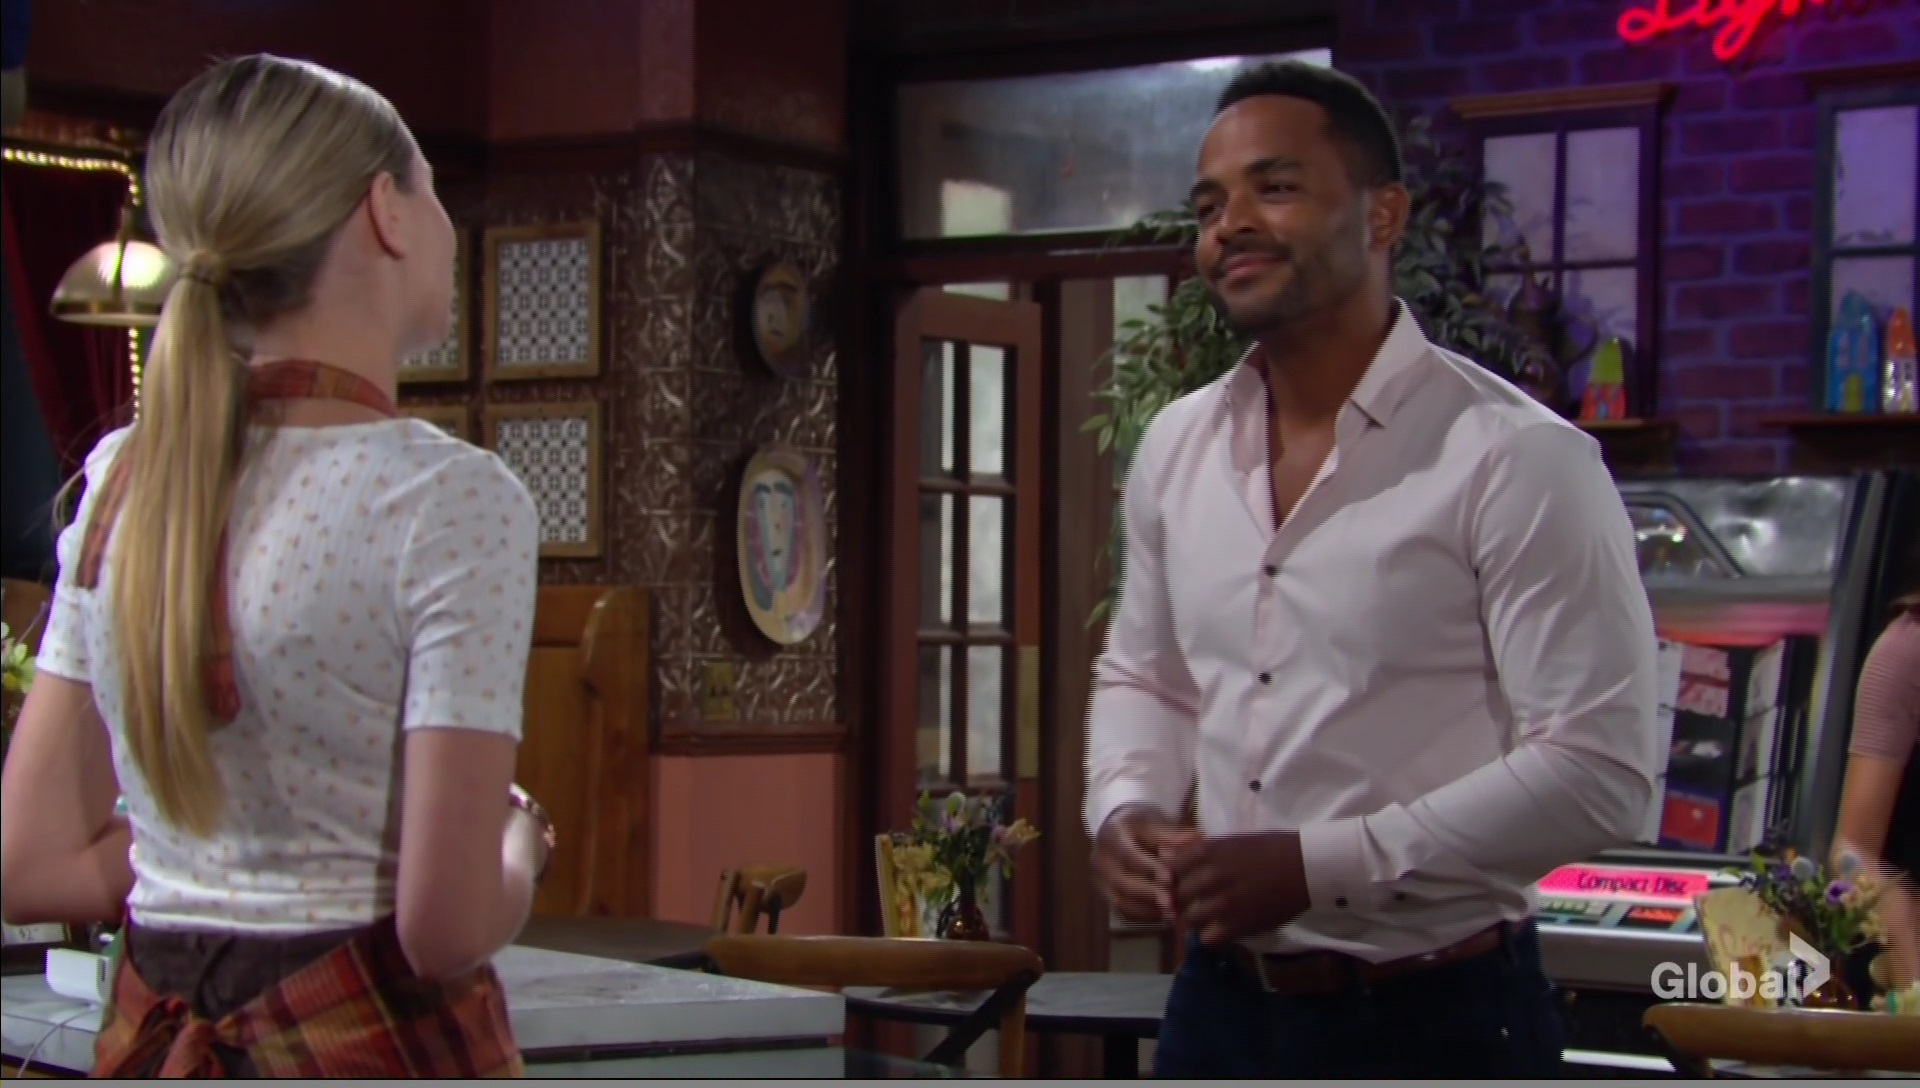 nate faith talk moses young and the restless